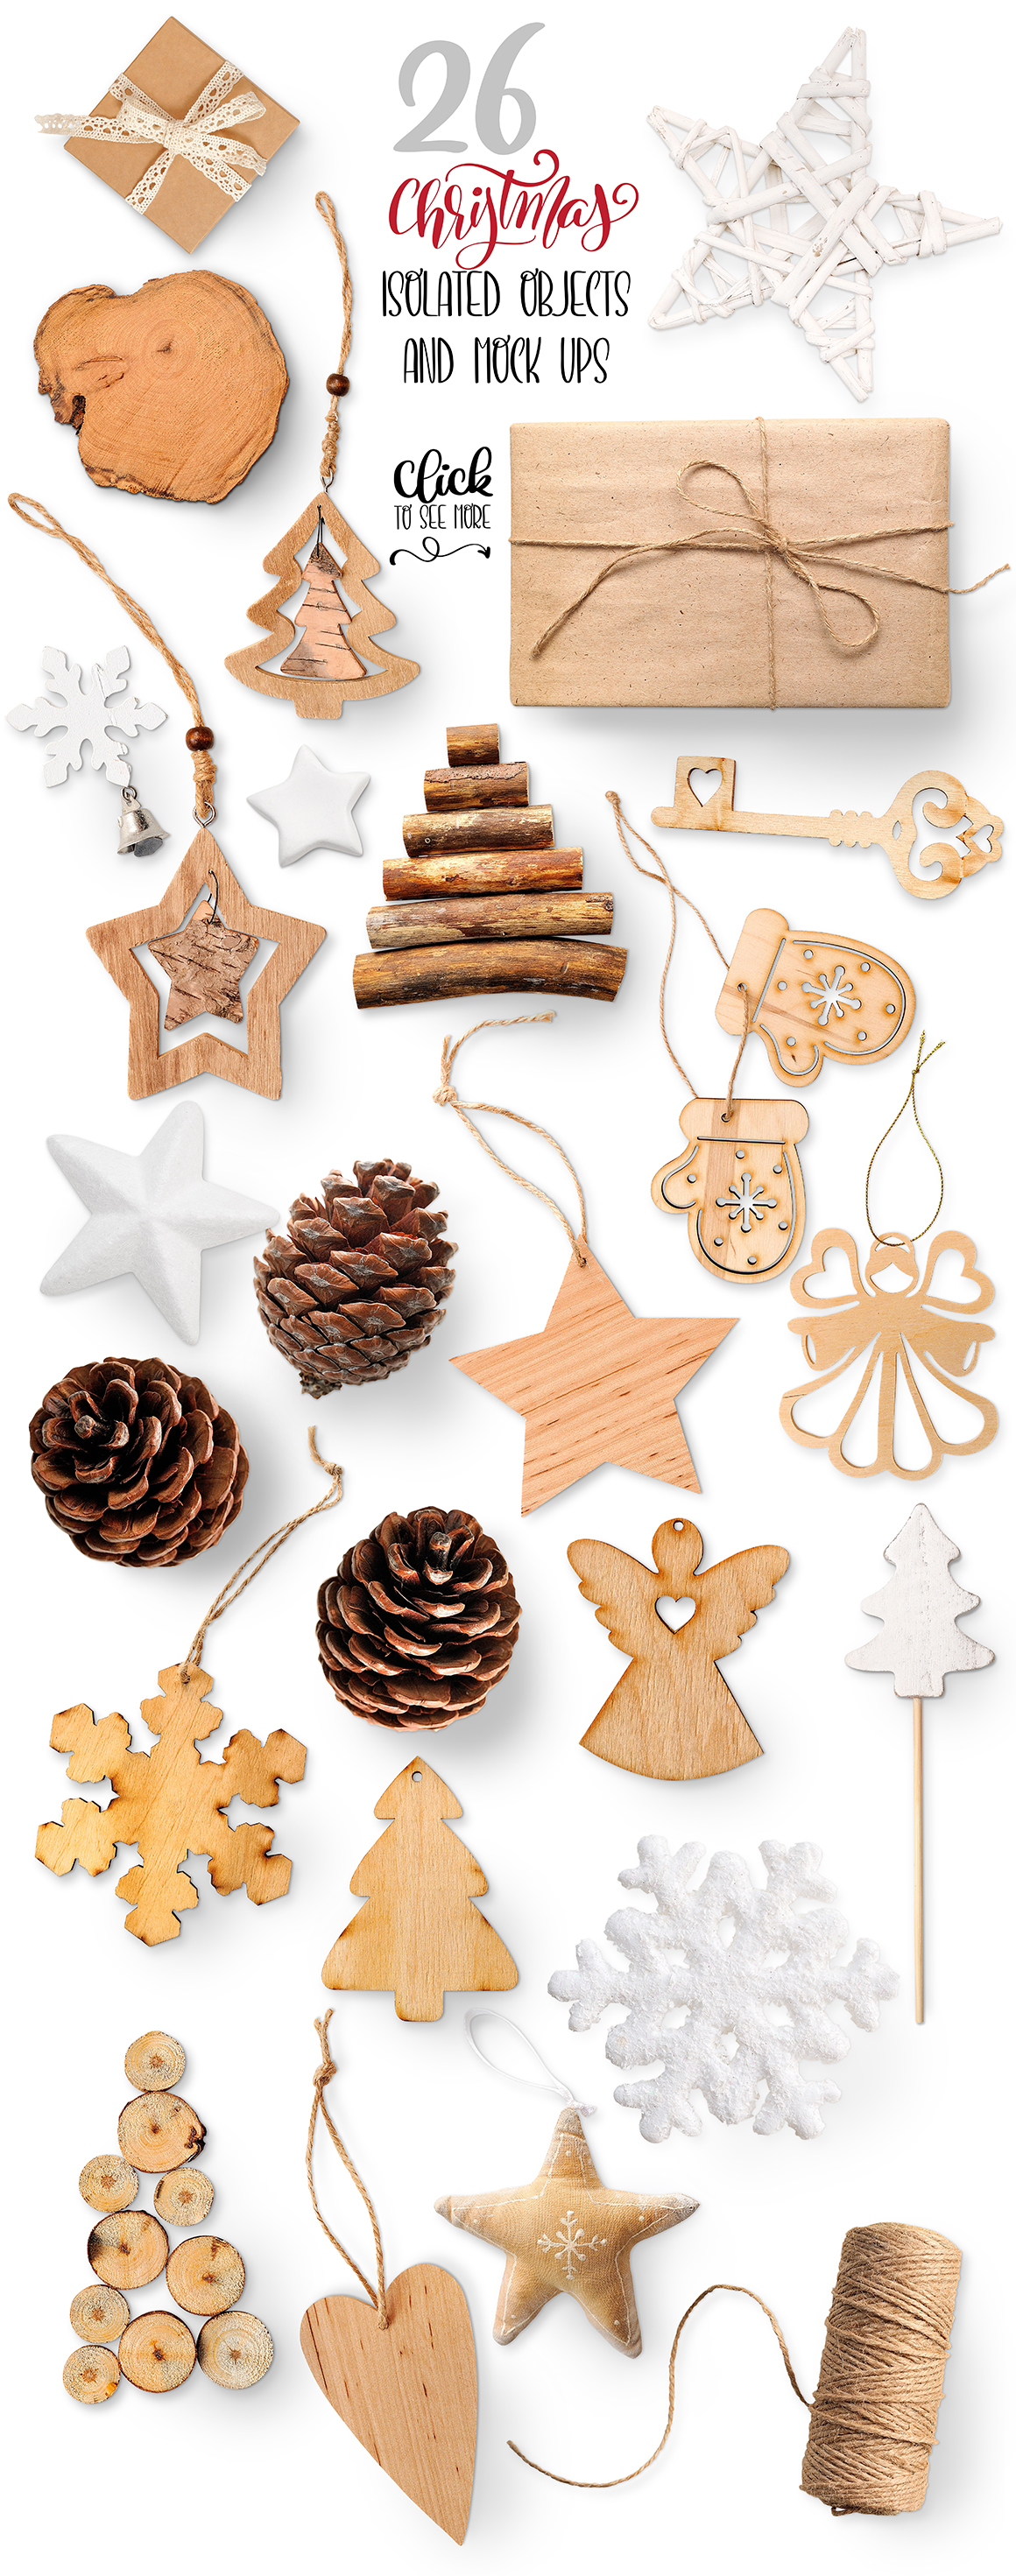 Christmas isolated objects and mock ups example image 7